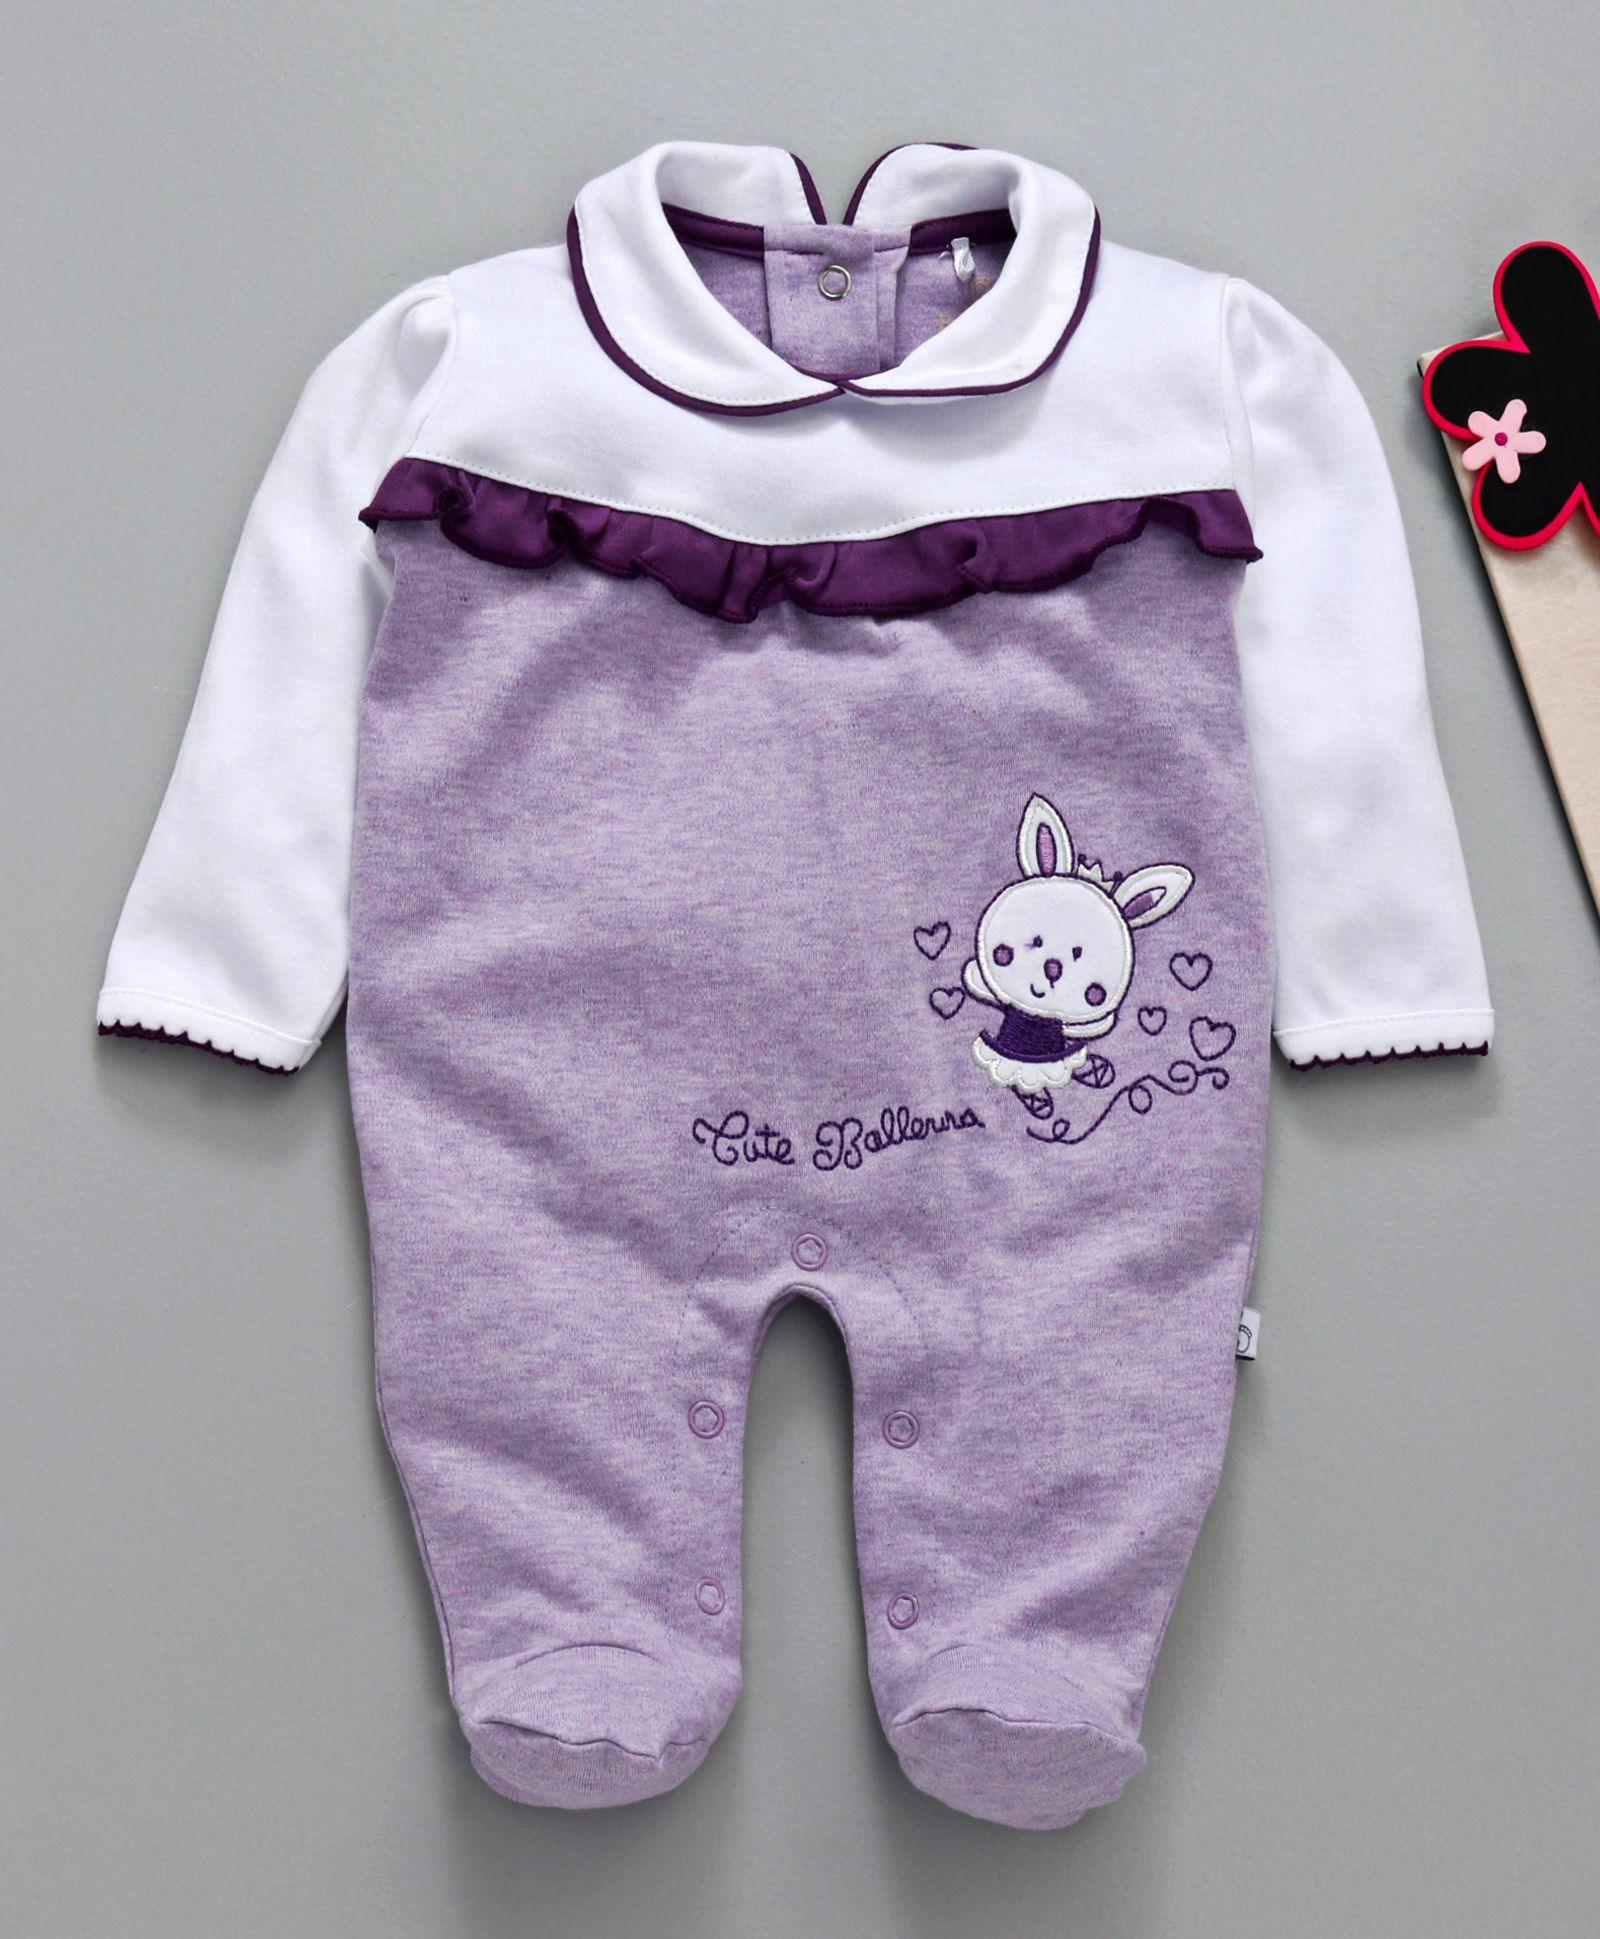 4aed0d1d1 Buy Baby Go Full Sleeves Footed Romper Rabbit Patch Purple for ...